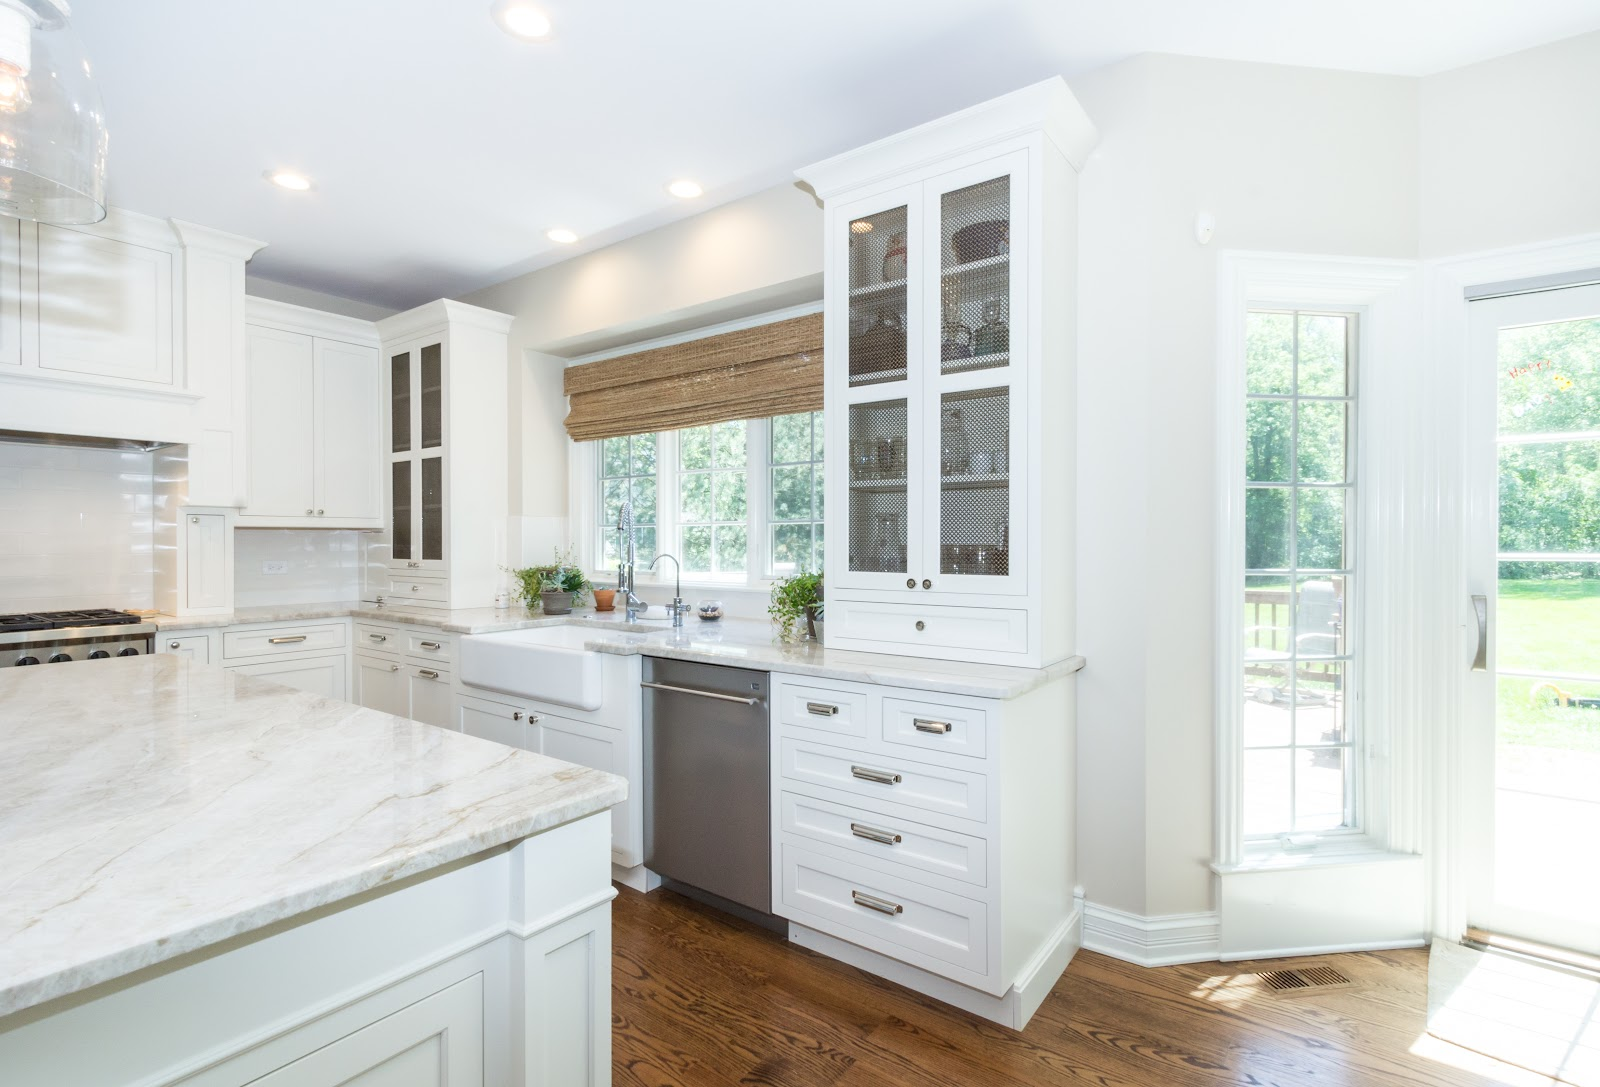 White kitchen with upper glass door panel cabinets flanking either side of the window above a white porcelain sink. Featuring stainless steel appliances and a nickel faucet.